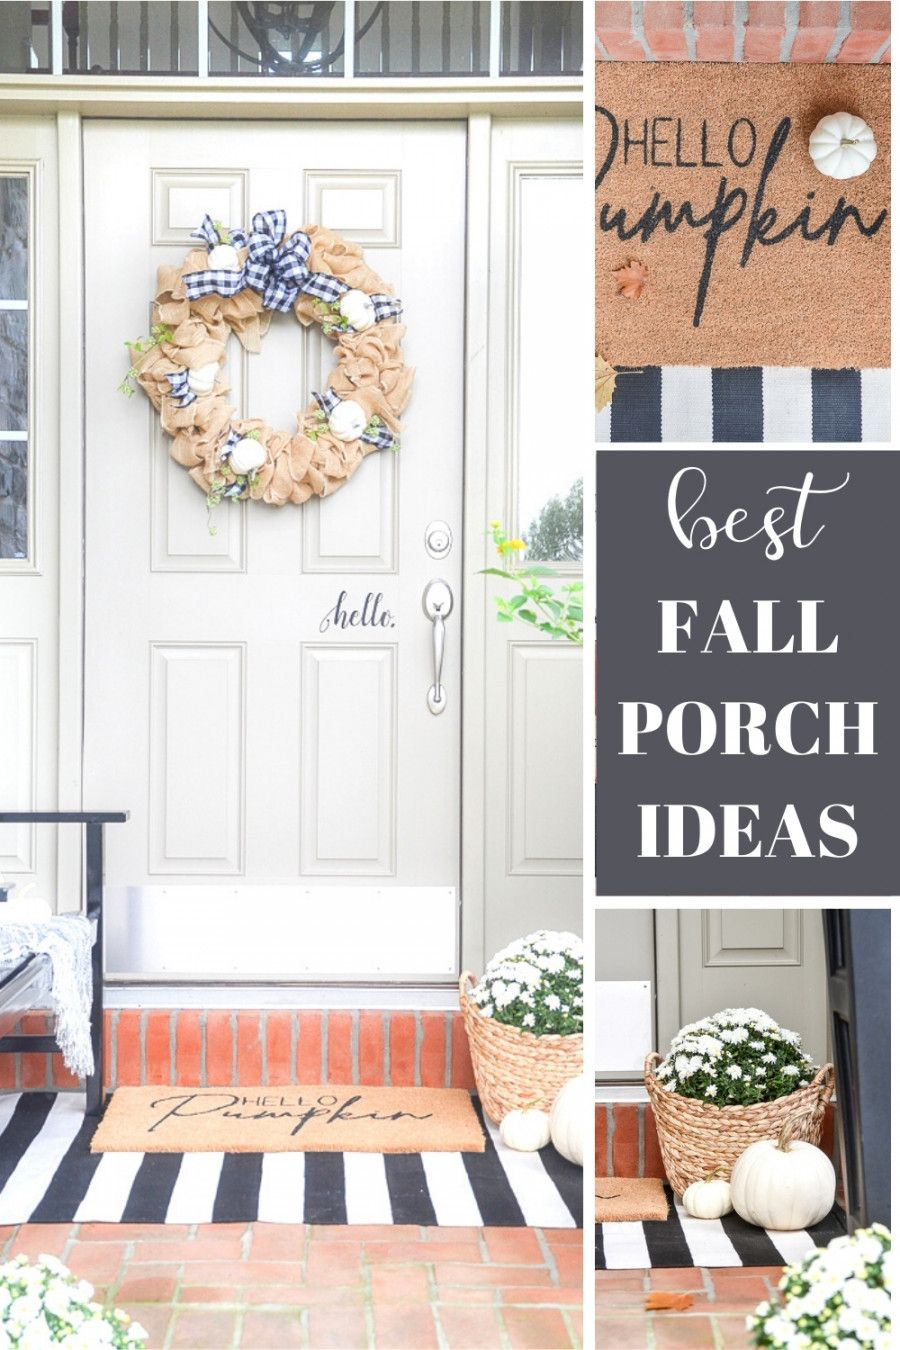 Get THE BEST TIPS FOR DECORATING A FABULOUS FALL FRONT PORCH! Lots of decorating ideas and inspiration #fall #falldecorating #falldecor #fallfrontdoor #frontdoordecor #decorating #homedecor #pumpkins #whitepumpkins #decoratingwithpumpkins #fallmums